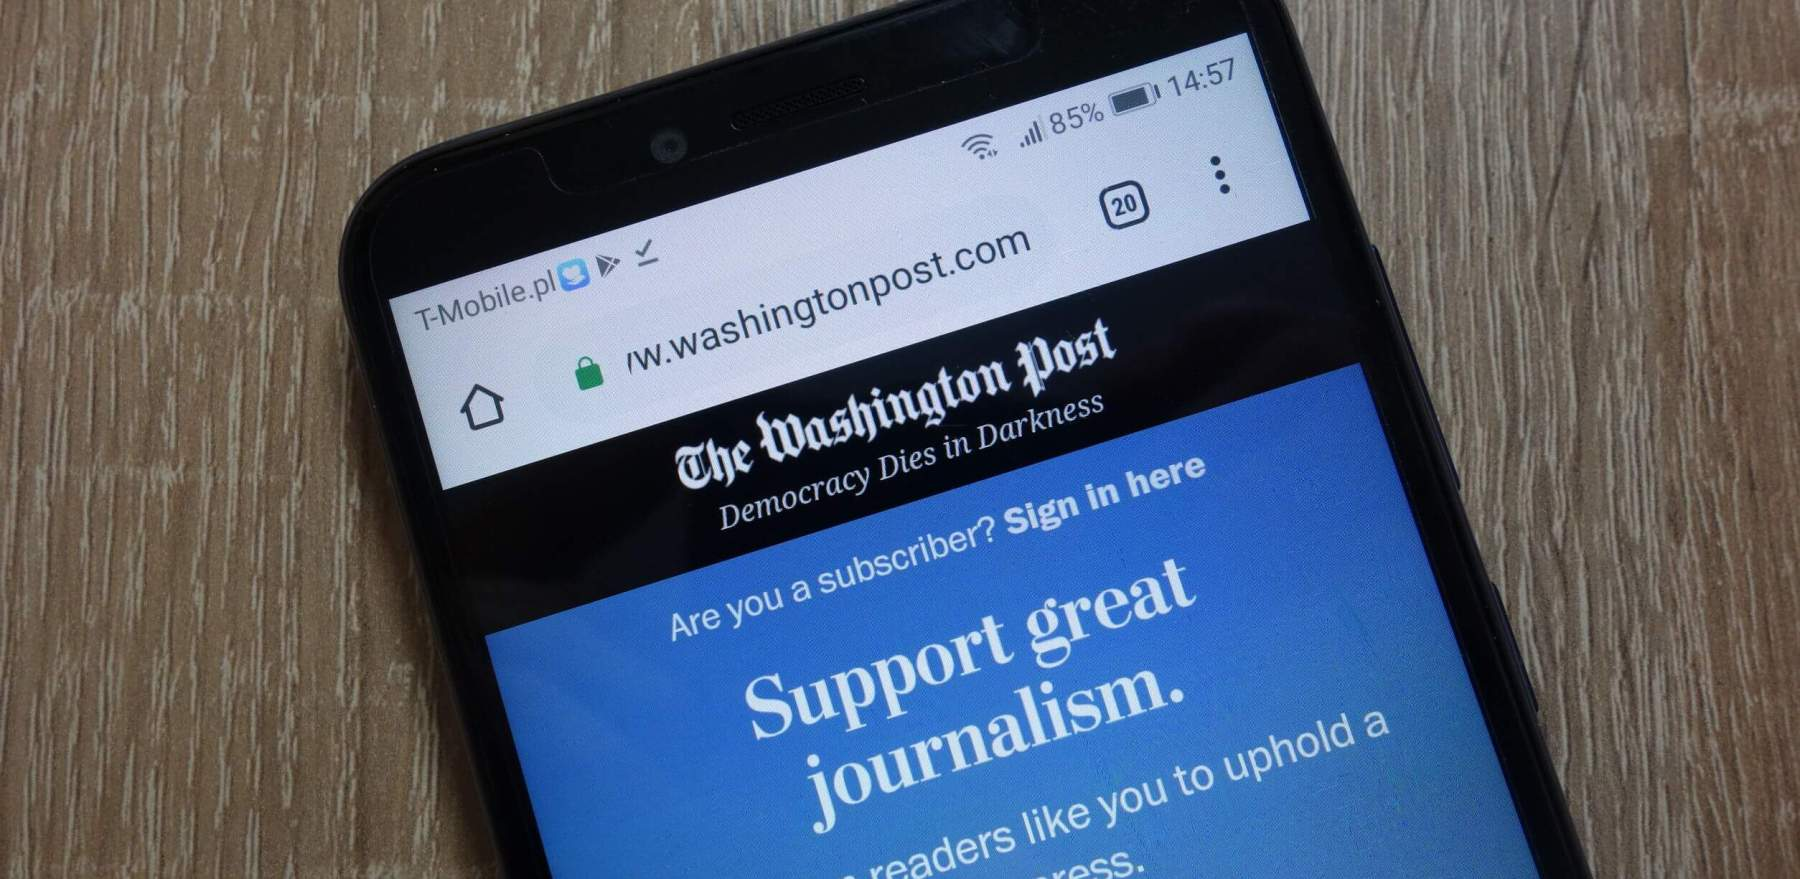 117319234 - konskie, poland - december 09, 2018: the washington post website (www.washingtonpost.com) displayed on smartphone